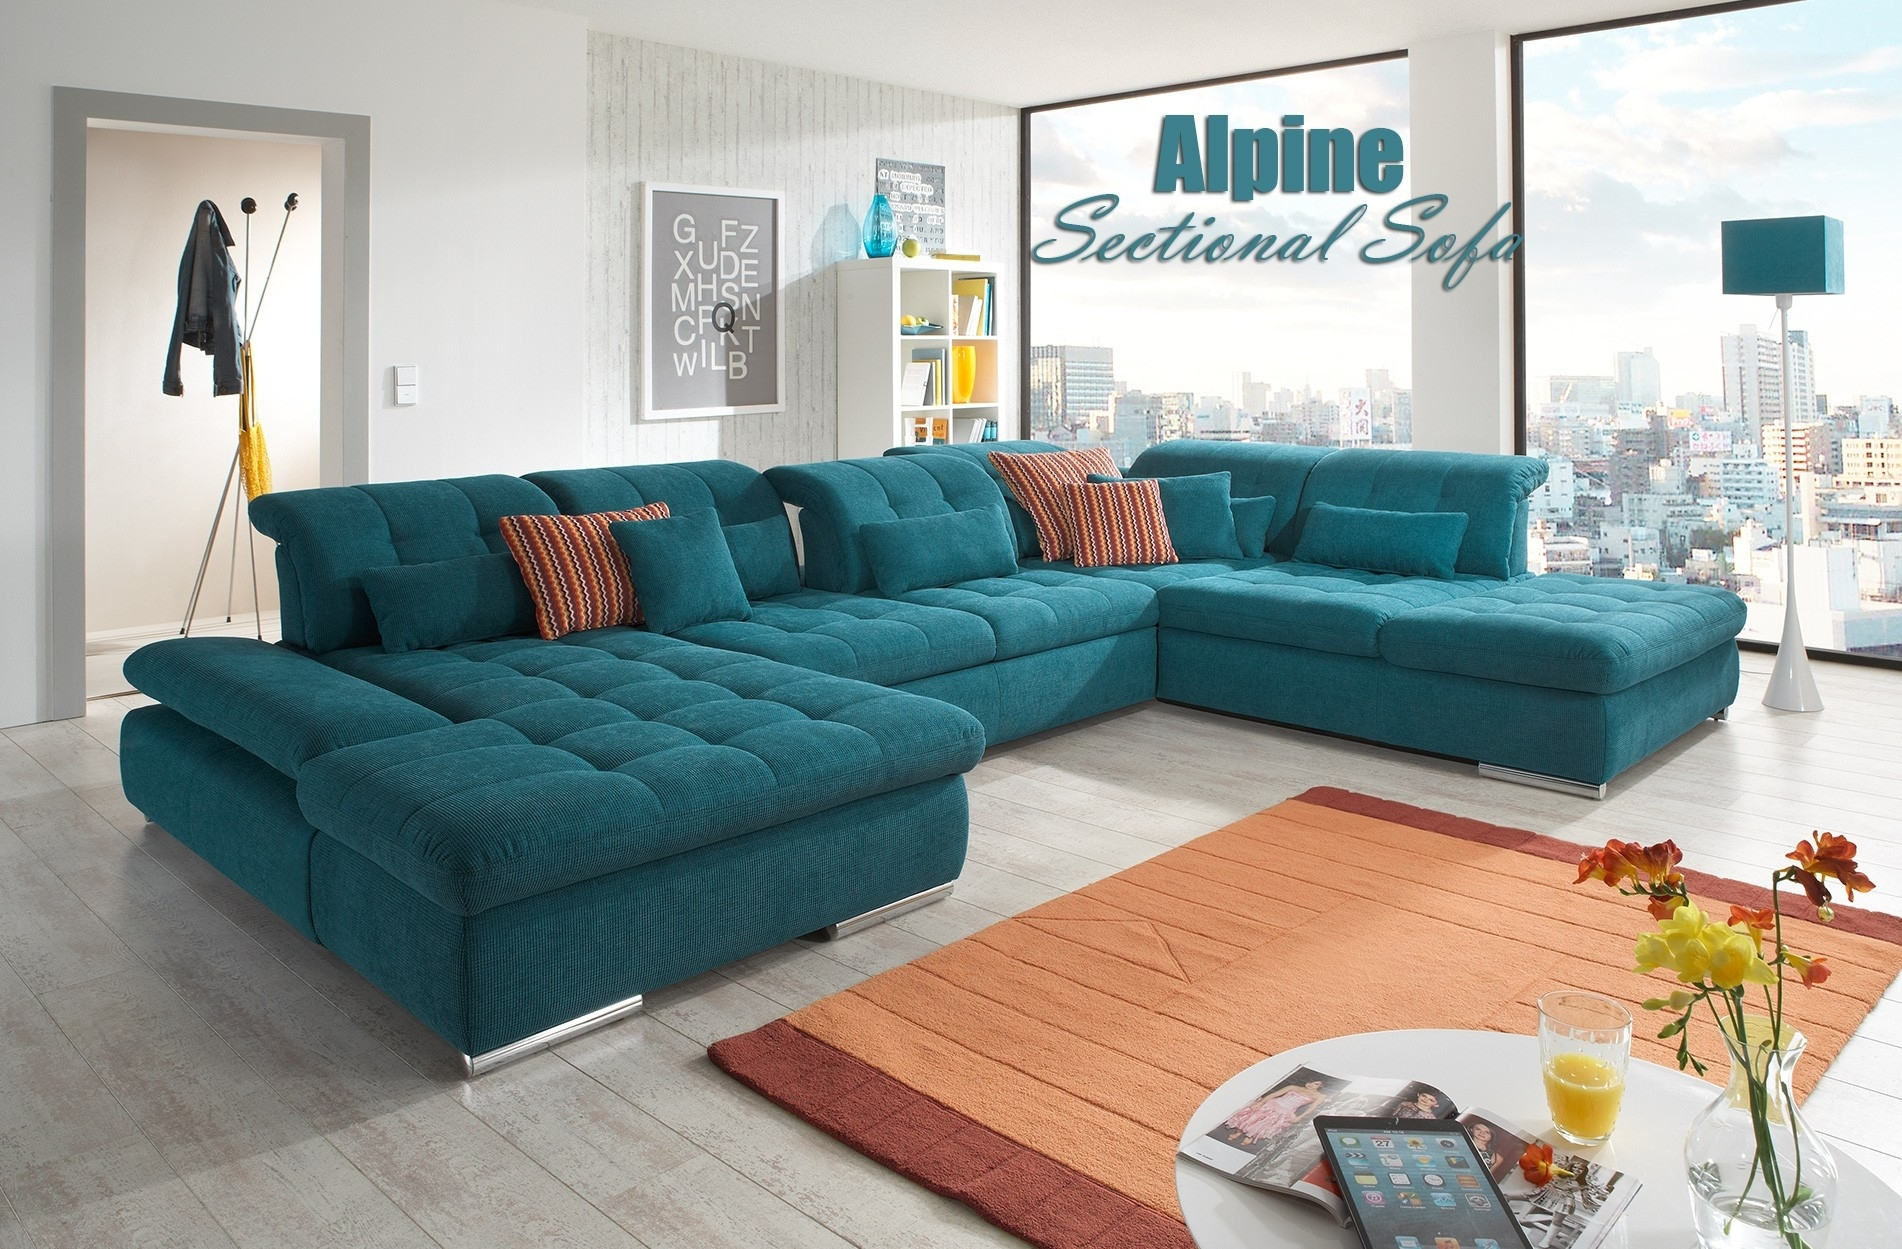 Alpine Sectional Sofa In Green Fabric For Green Sectional Sofas (View 7 of 10)